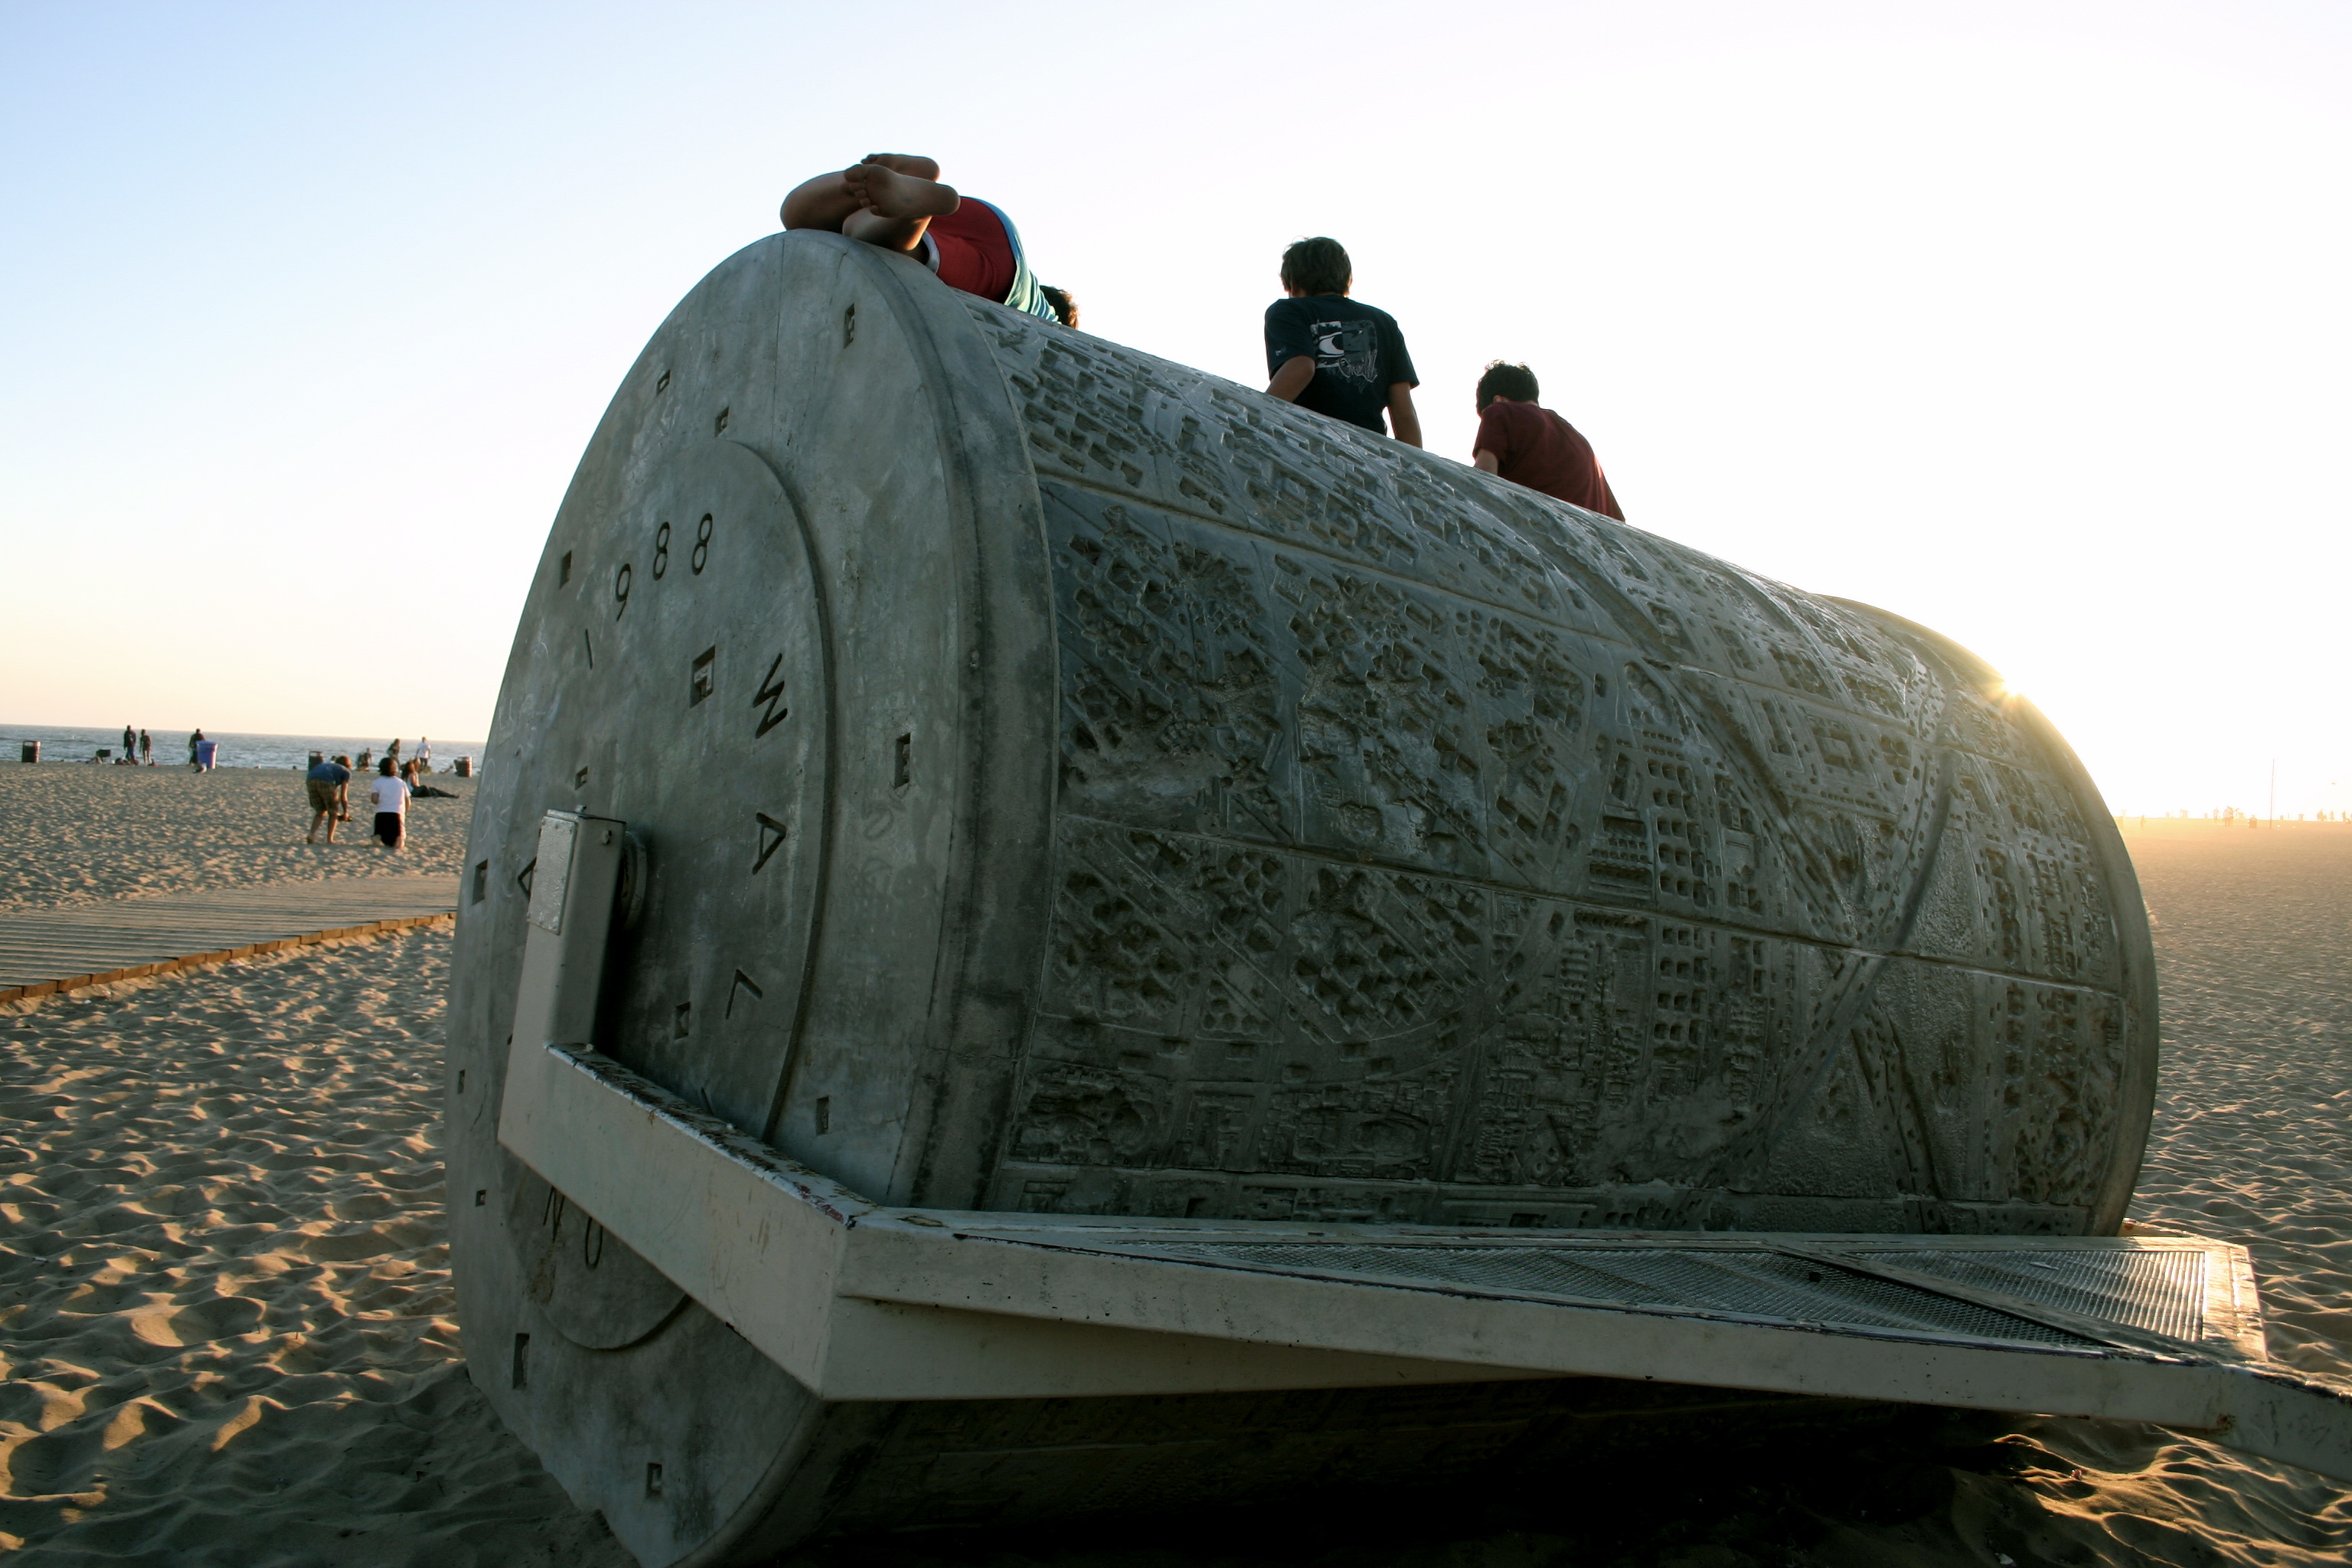 Santa Monica Beach: This thing rolls out a map of Santa Monica onto the sand